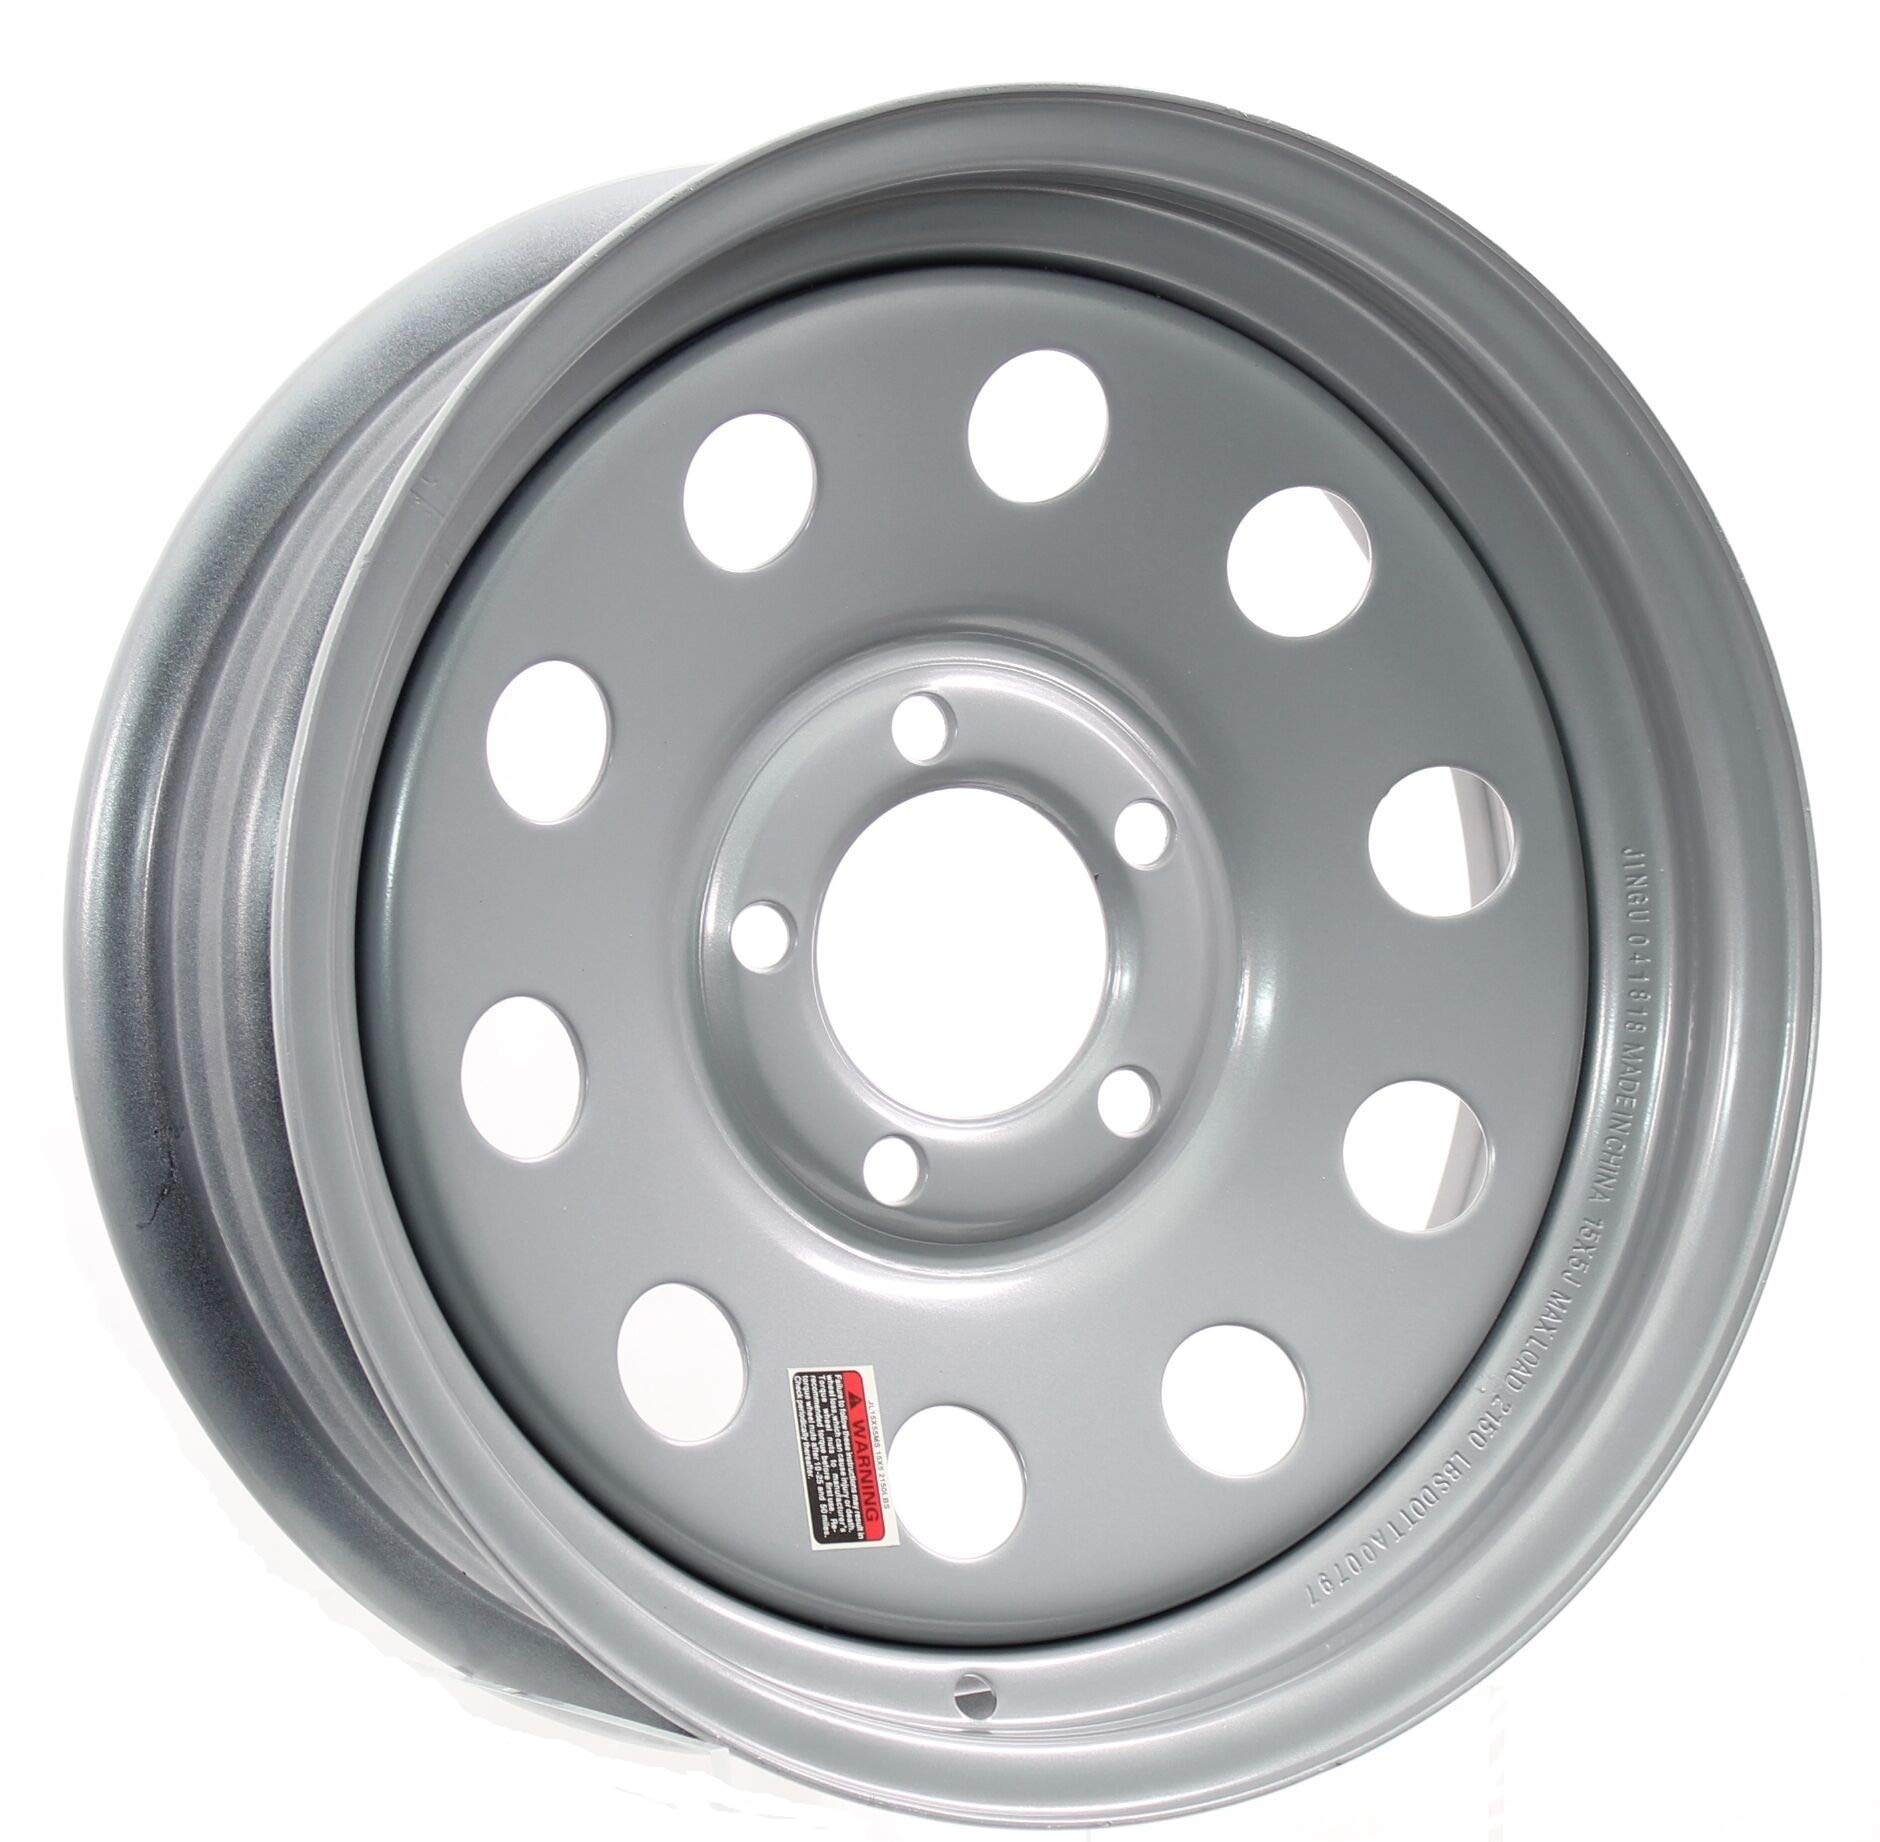 Southwest Wheel 15'' x 5'' Silver Modular Trailer Wheel (5-4.5 Bolt Circle) with Center Cap and Valve Stem by Southwest Wheel